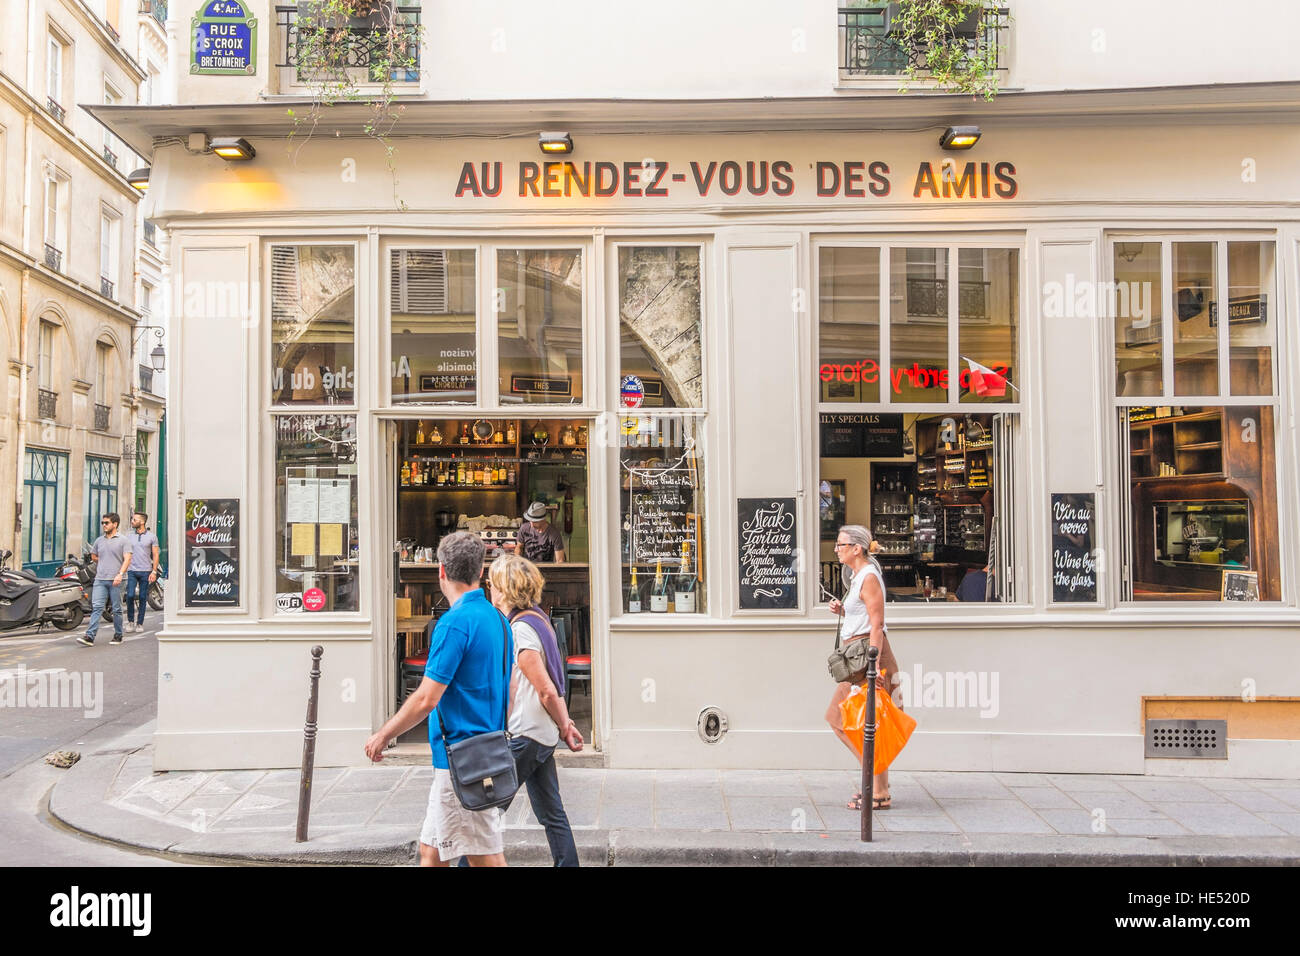 street scene in front of au rendez-vous des amis, bar, brasserie - Stock Image